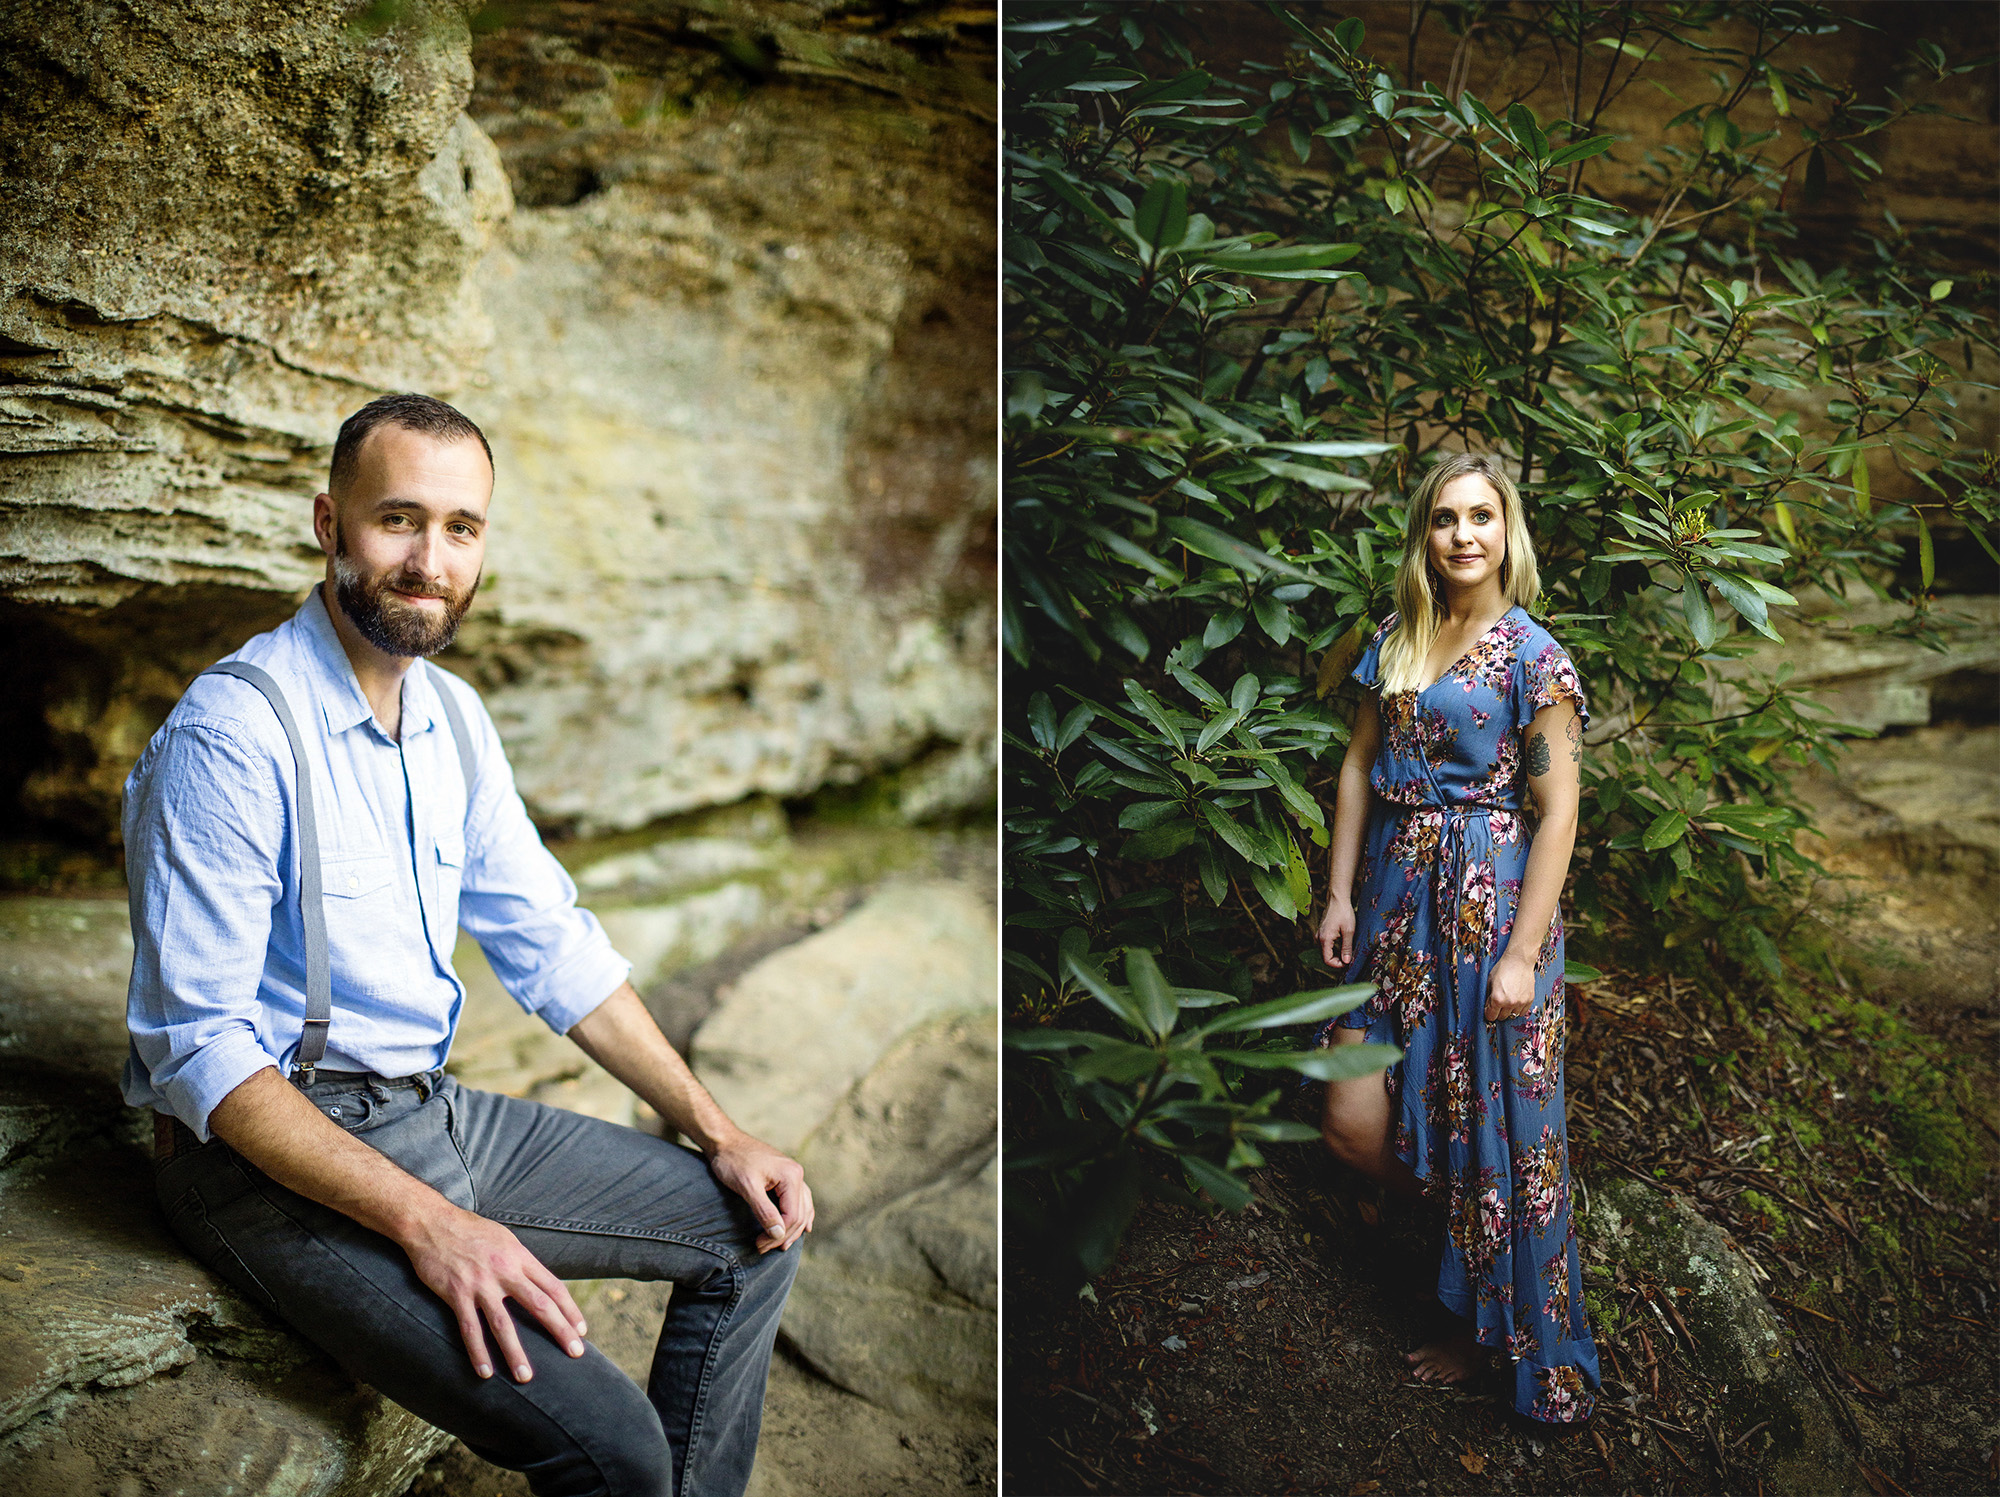 Seriously_Sabrina_Photography_Red_River_Gorge_Engagement_Session_Monika_Steven_4.jpg